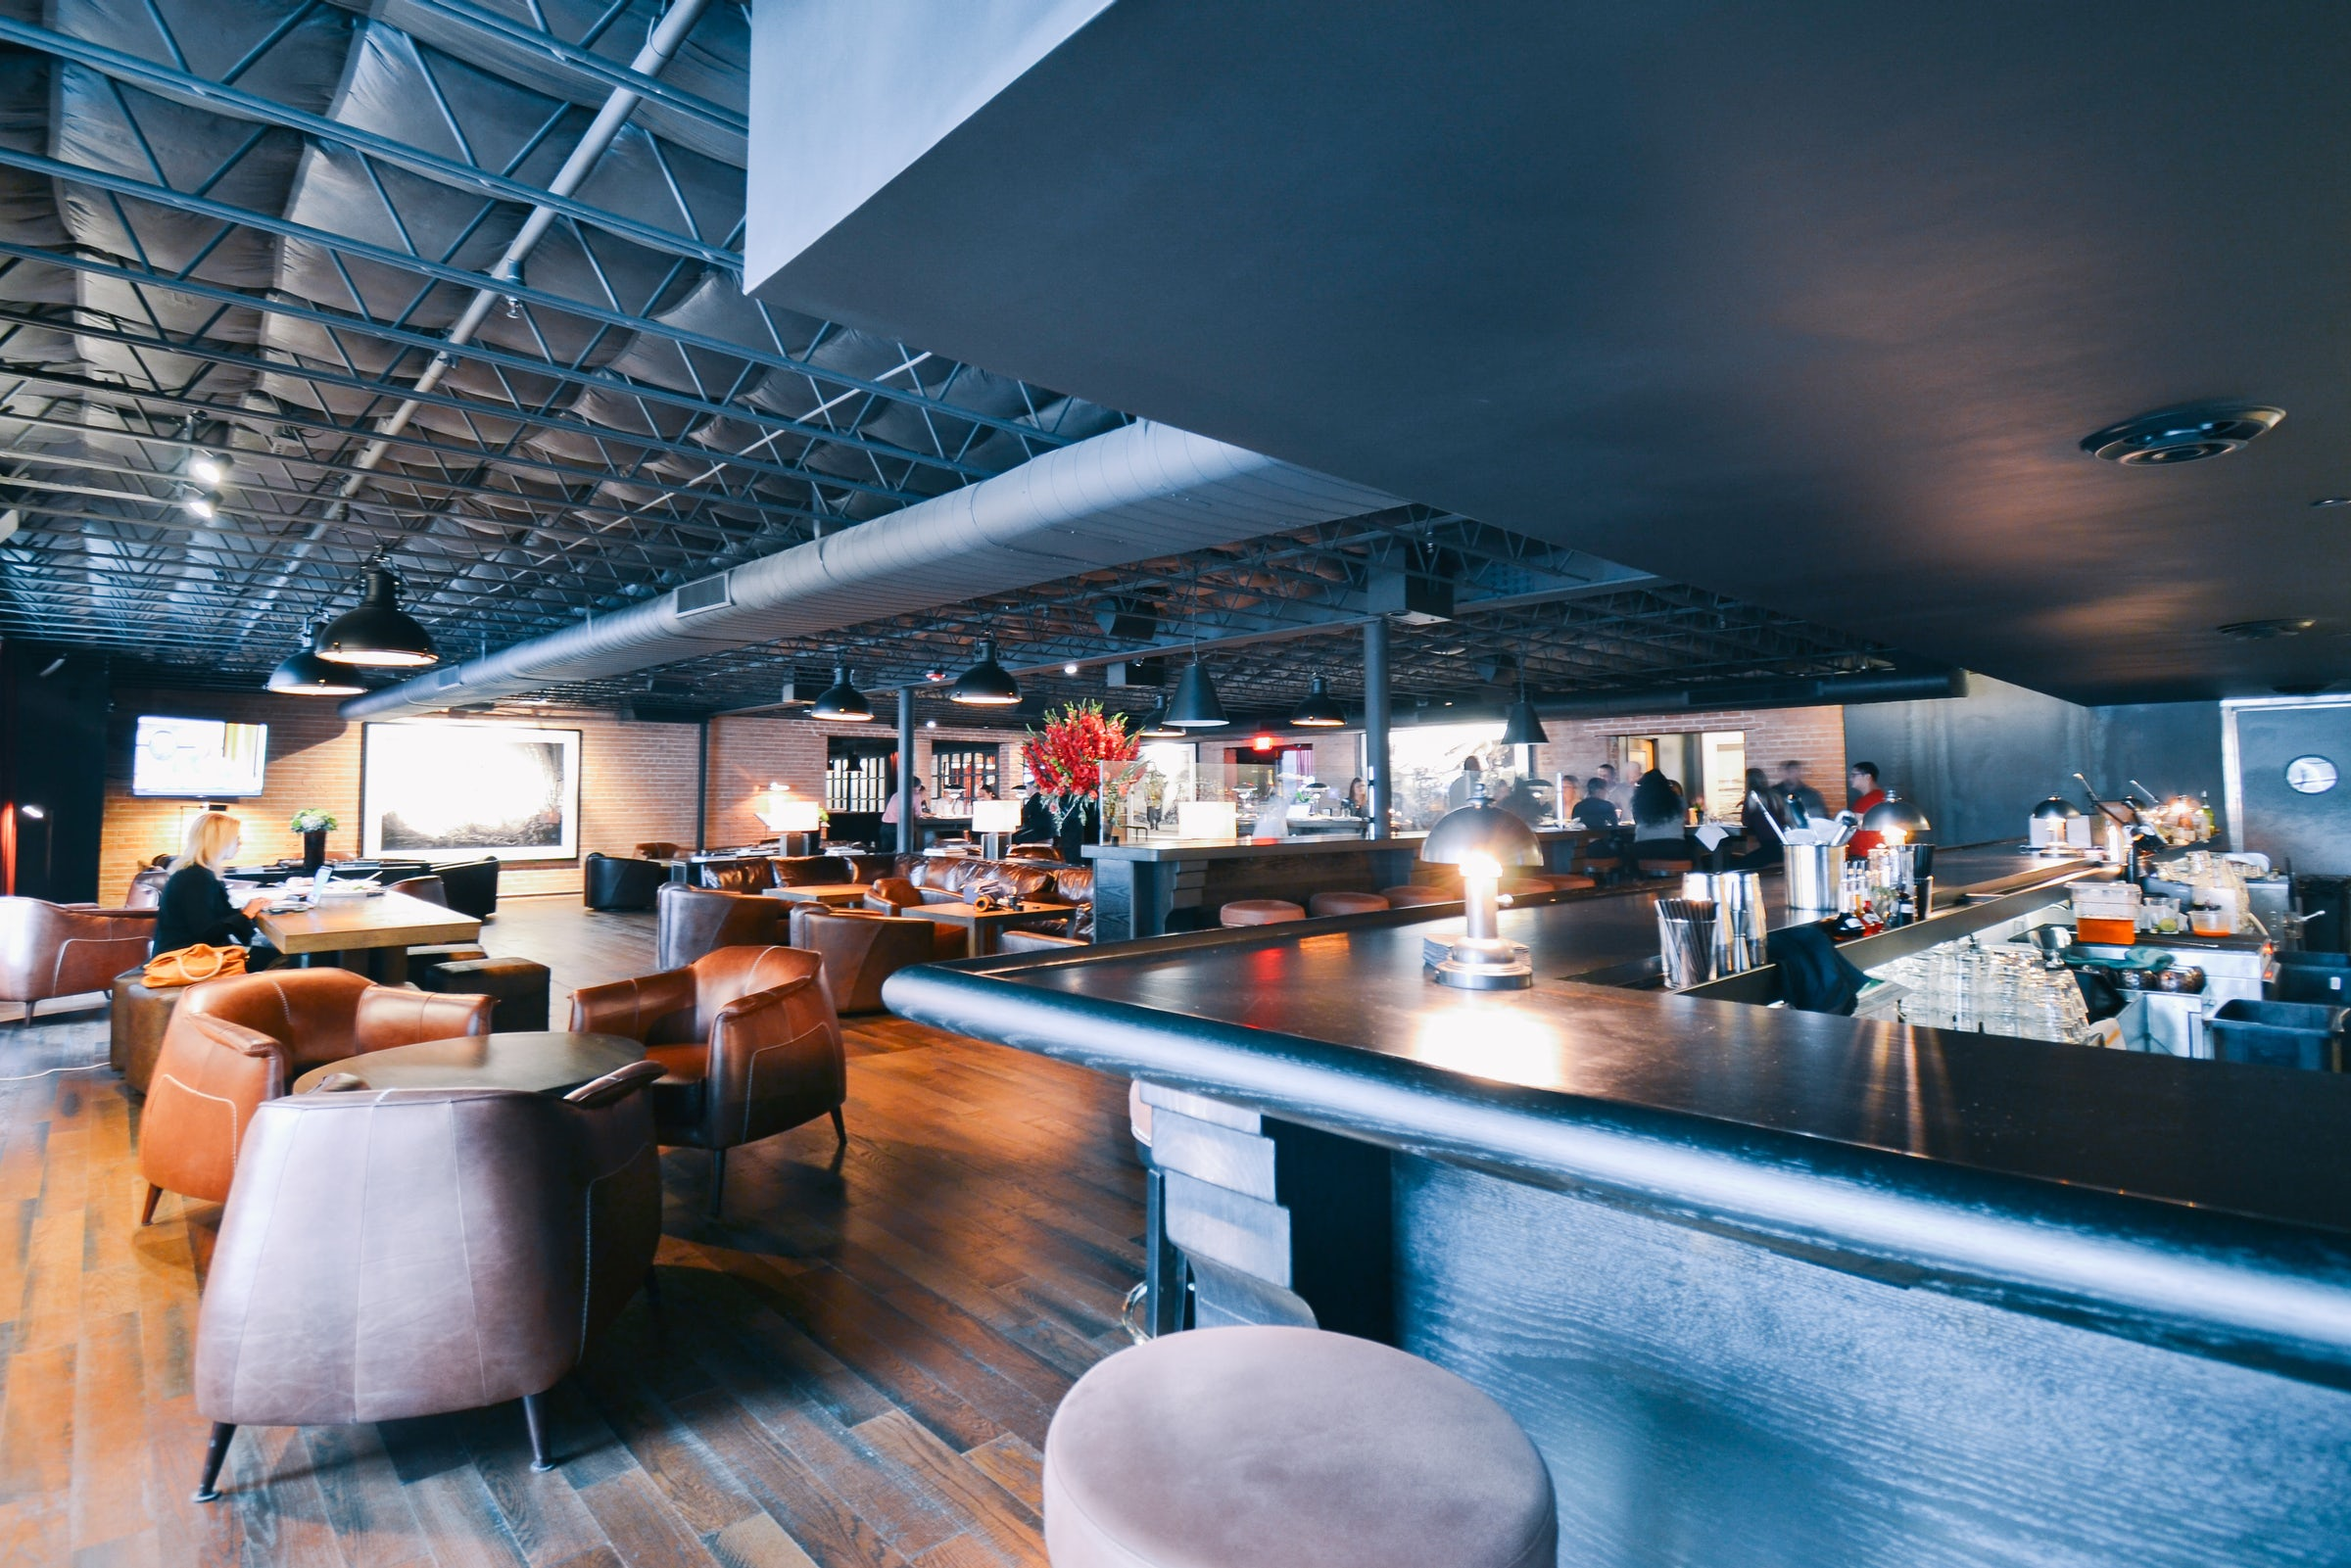 The Network Bar in Beyond Dallas